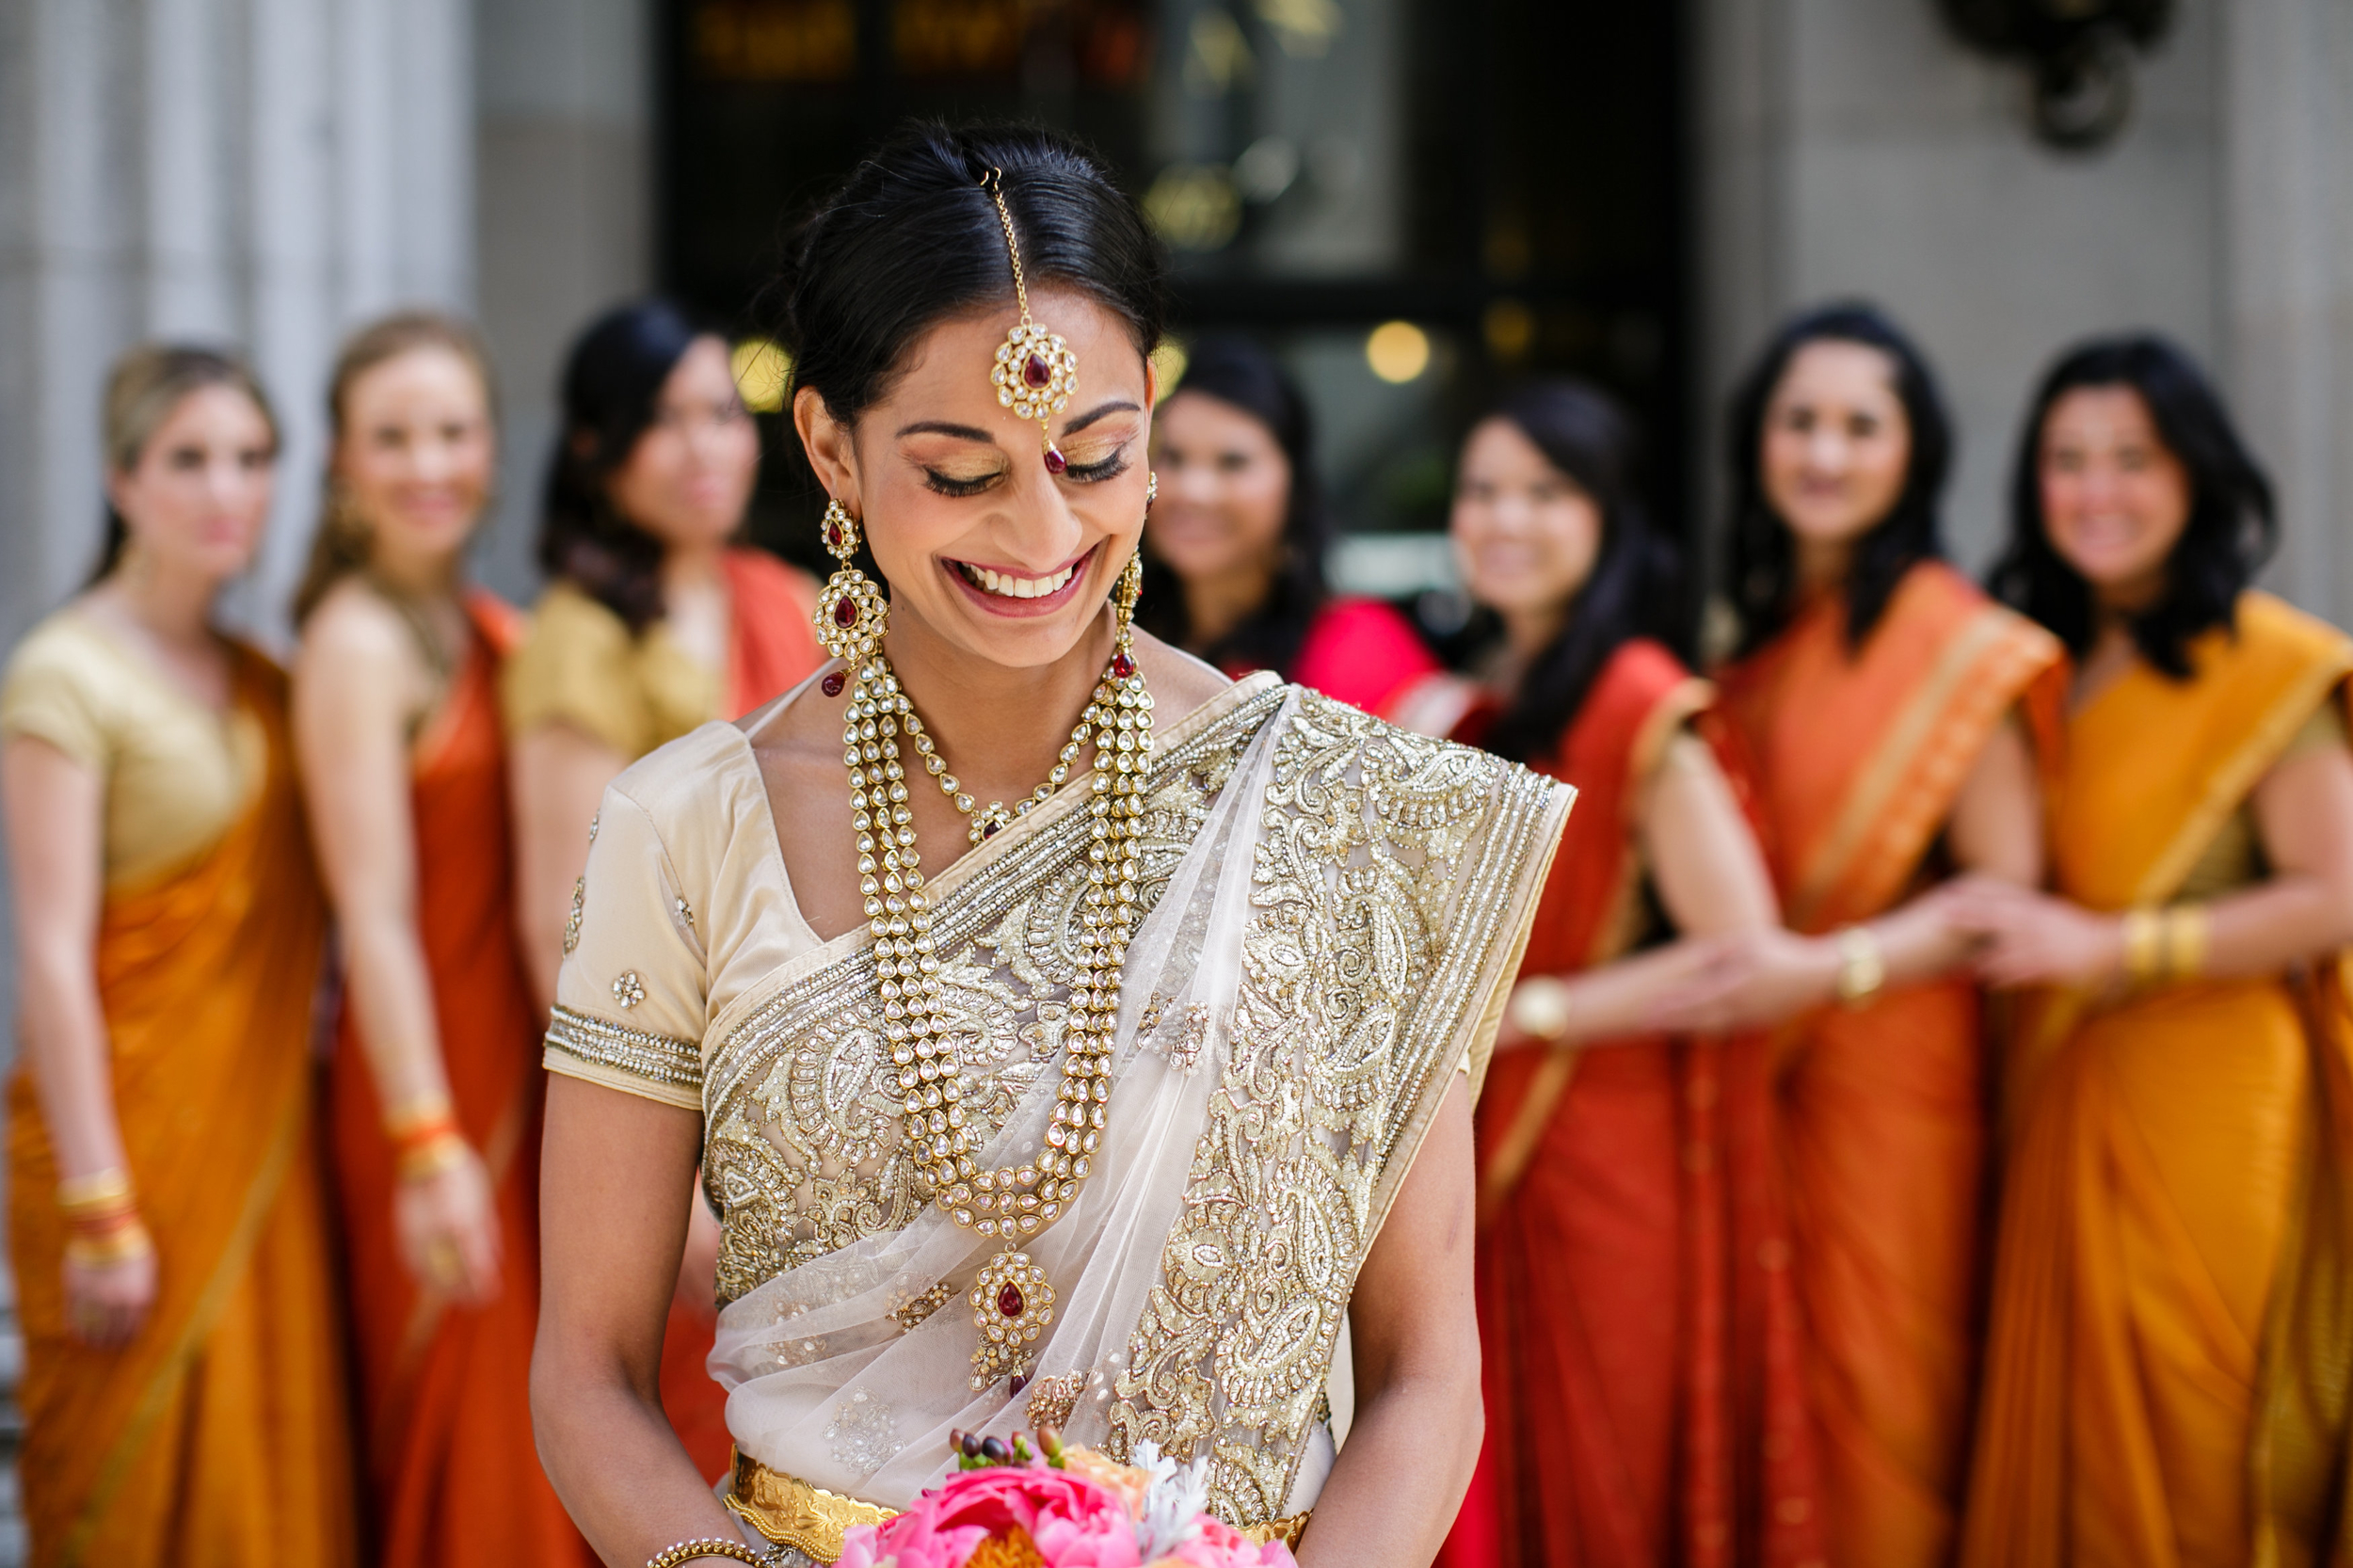 AnaisEvents_JihanCerdaPhotography_Priya-and-Jason - 044.jpg